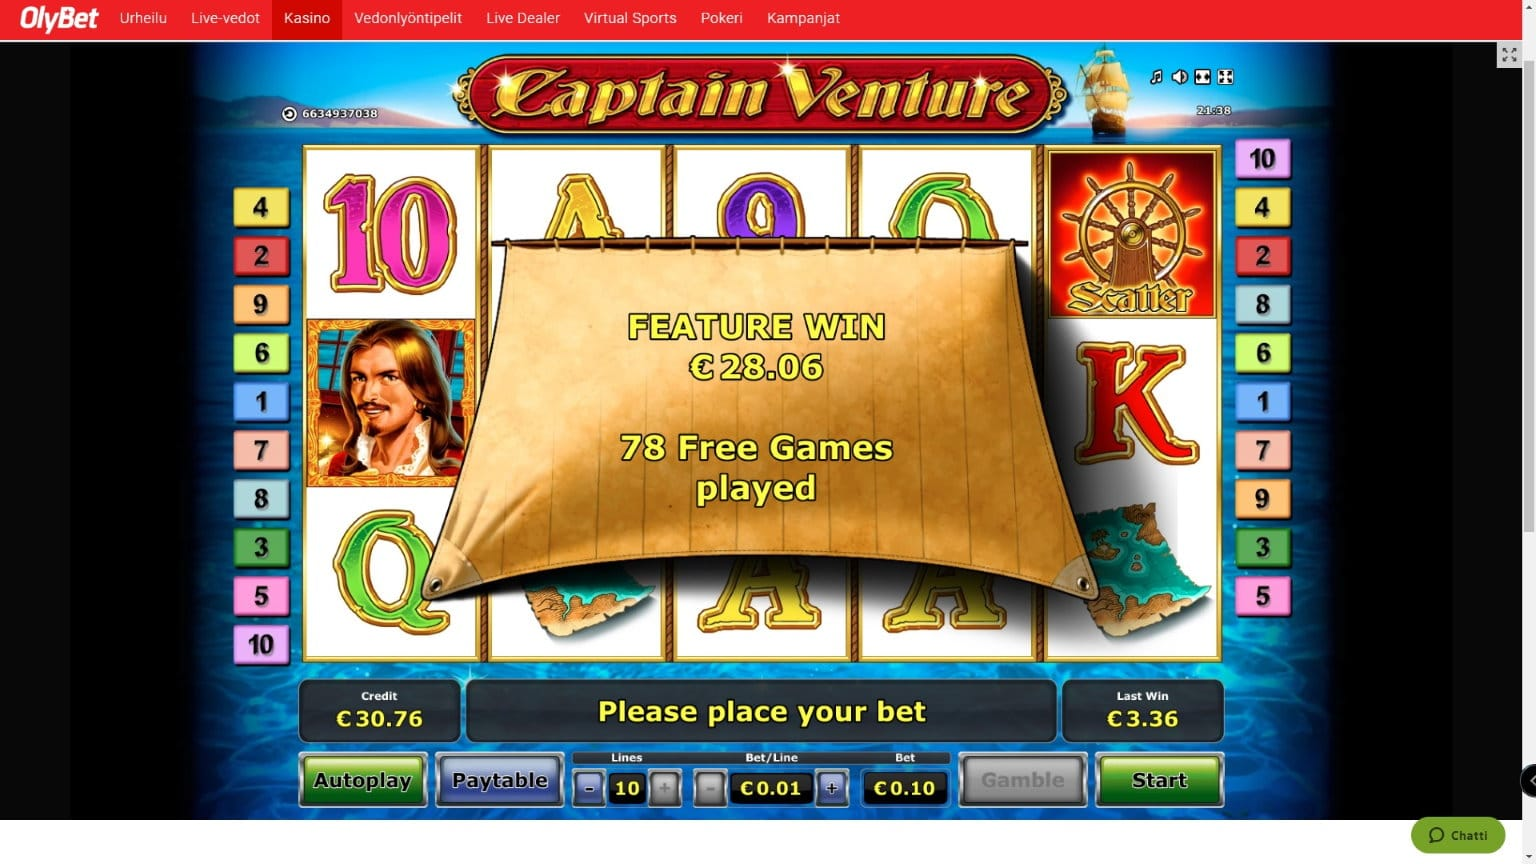 Captain Venture Slot big win picture